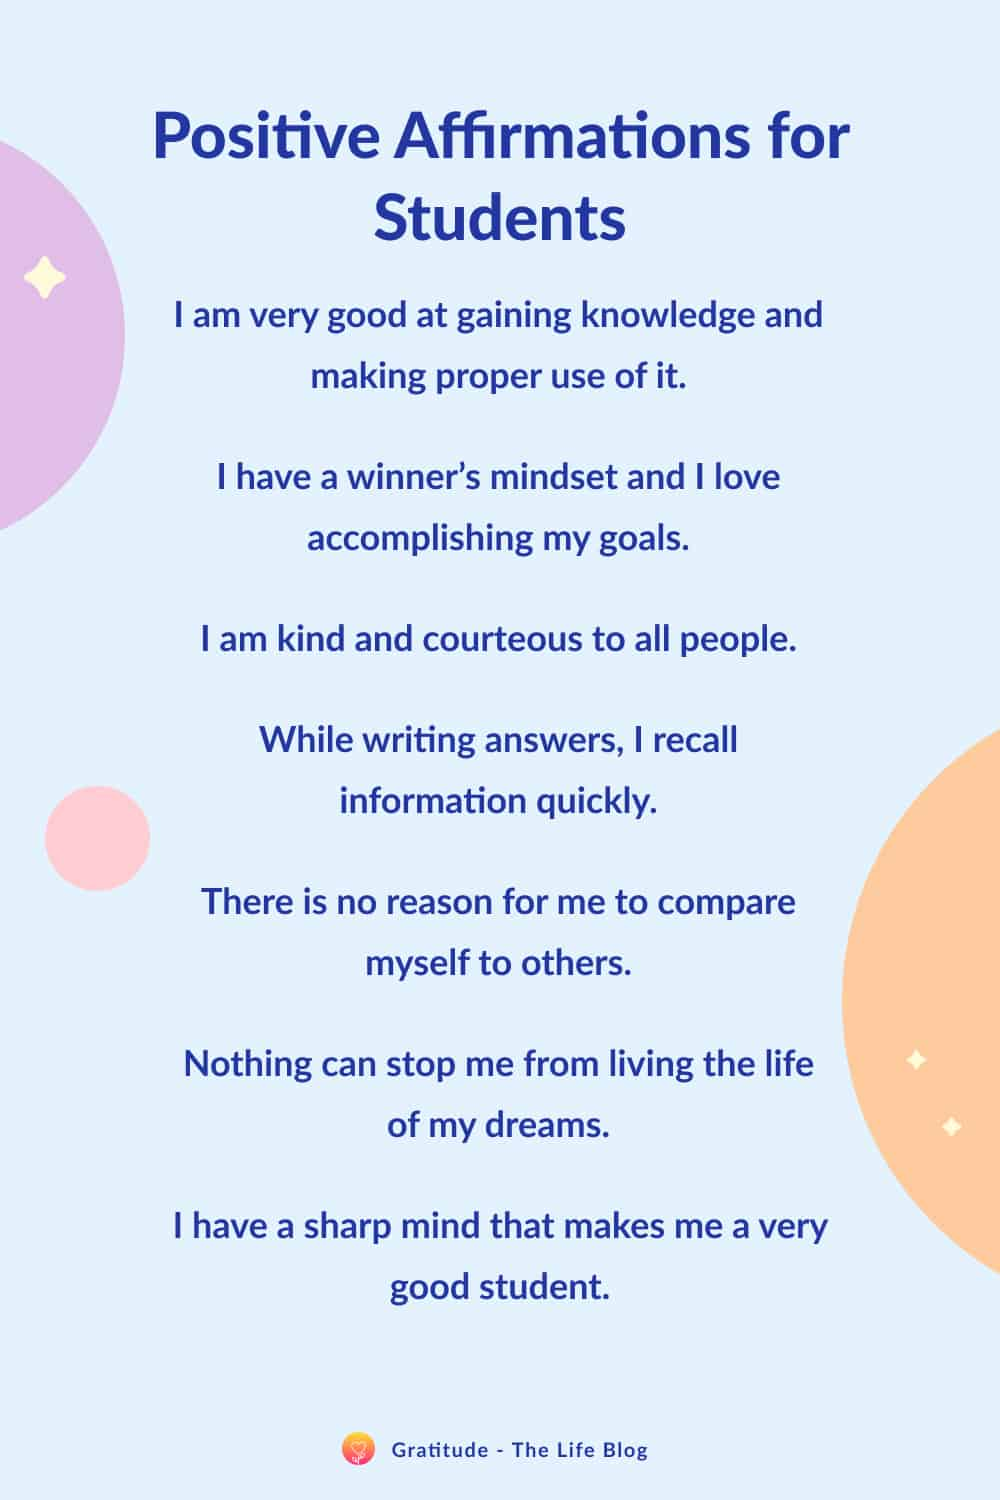 Image with list of positive affirmations for students